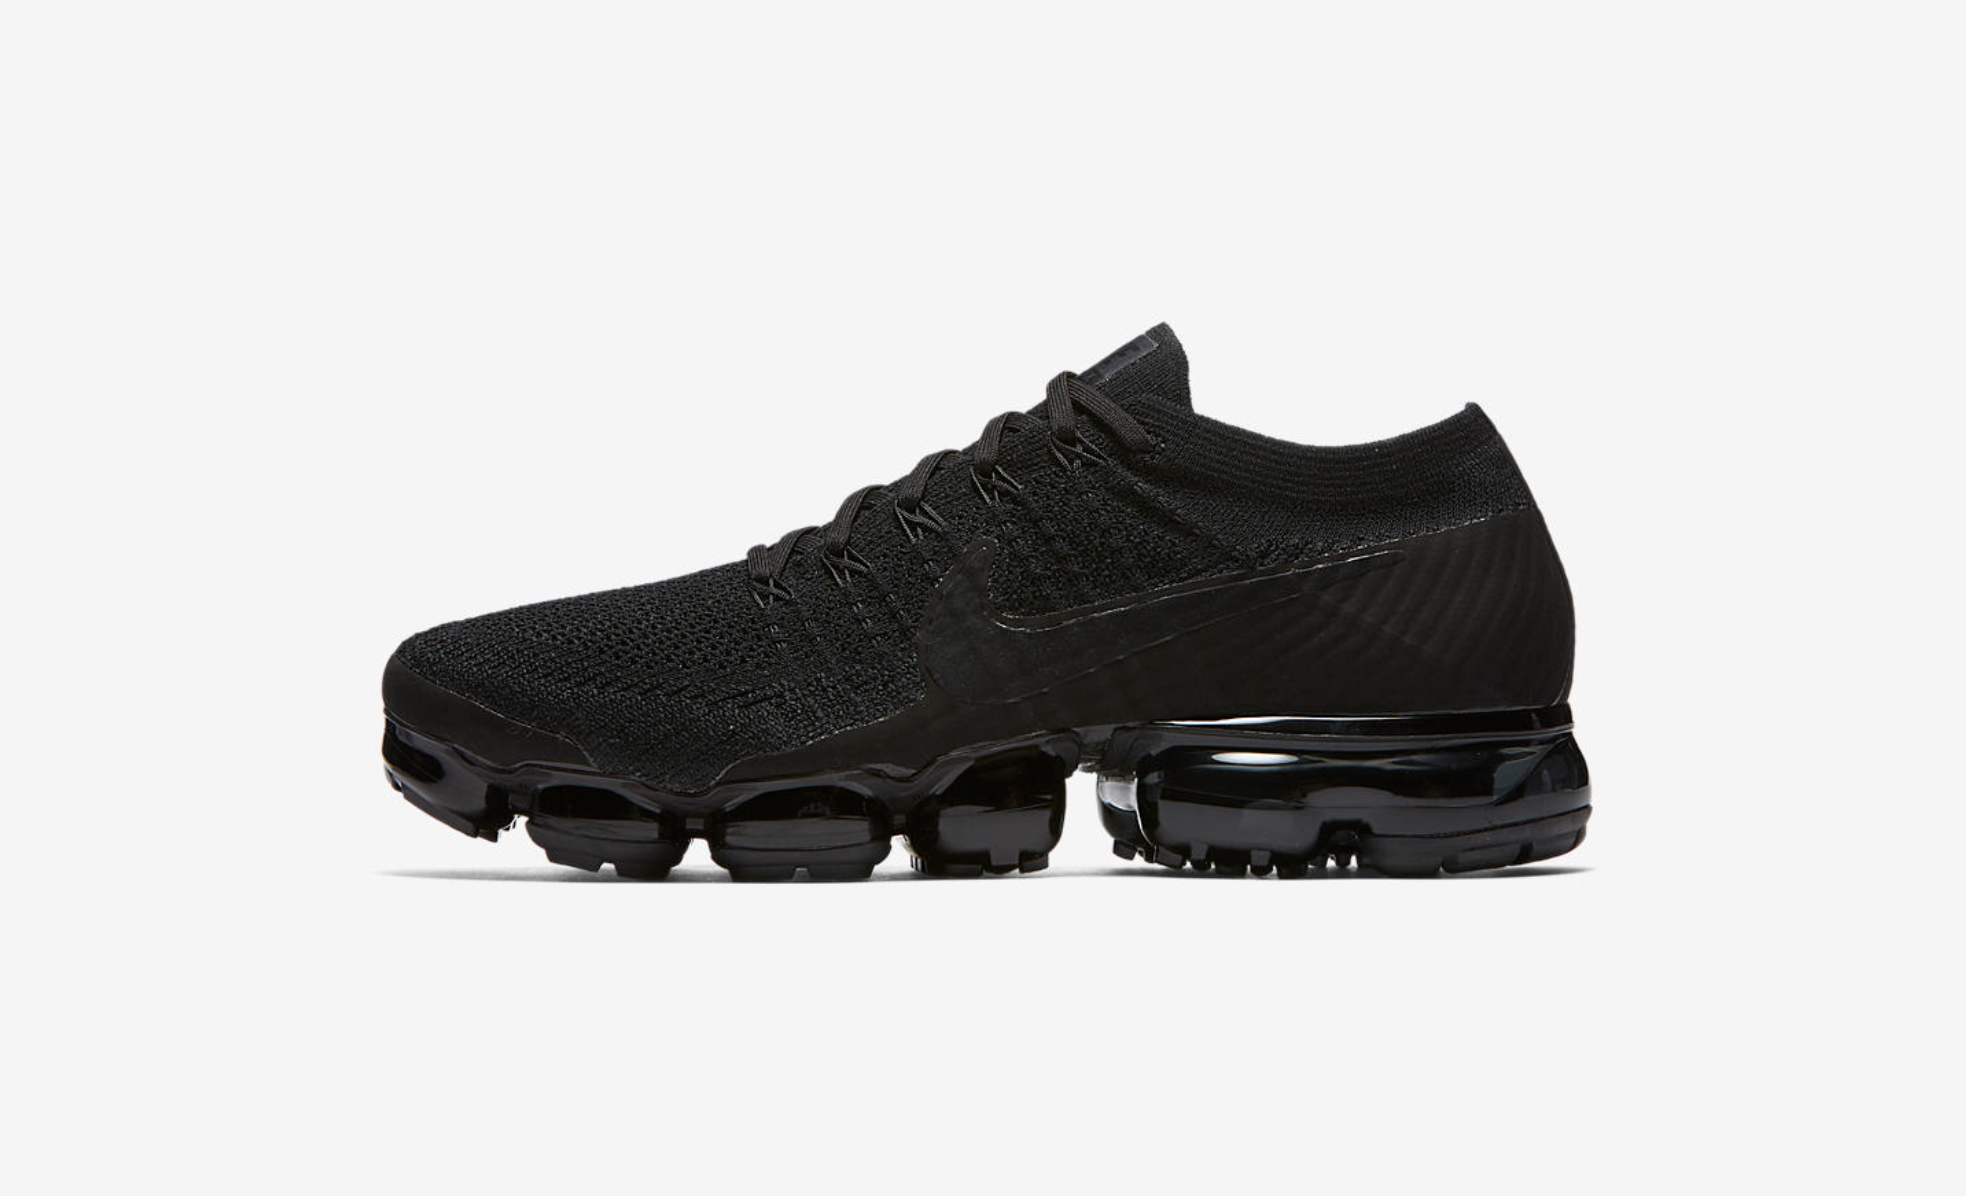 best sneakers 9b2ca 2db8e Triple Black Air VaporMaxes for Friday the 13th - WearTesters